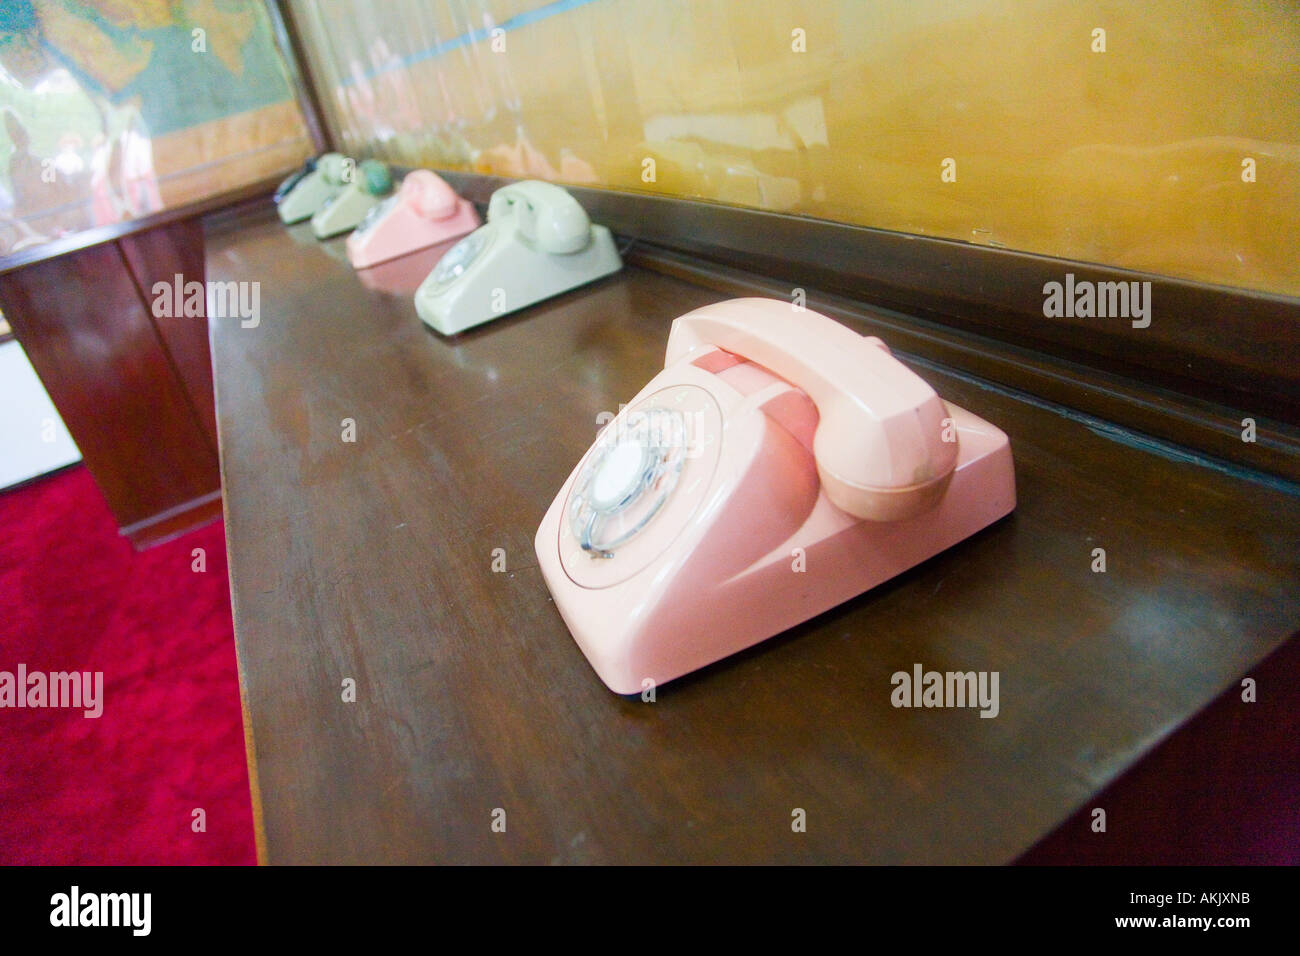 Pastel colored telephones on counter with maps - Stock Image